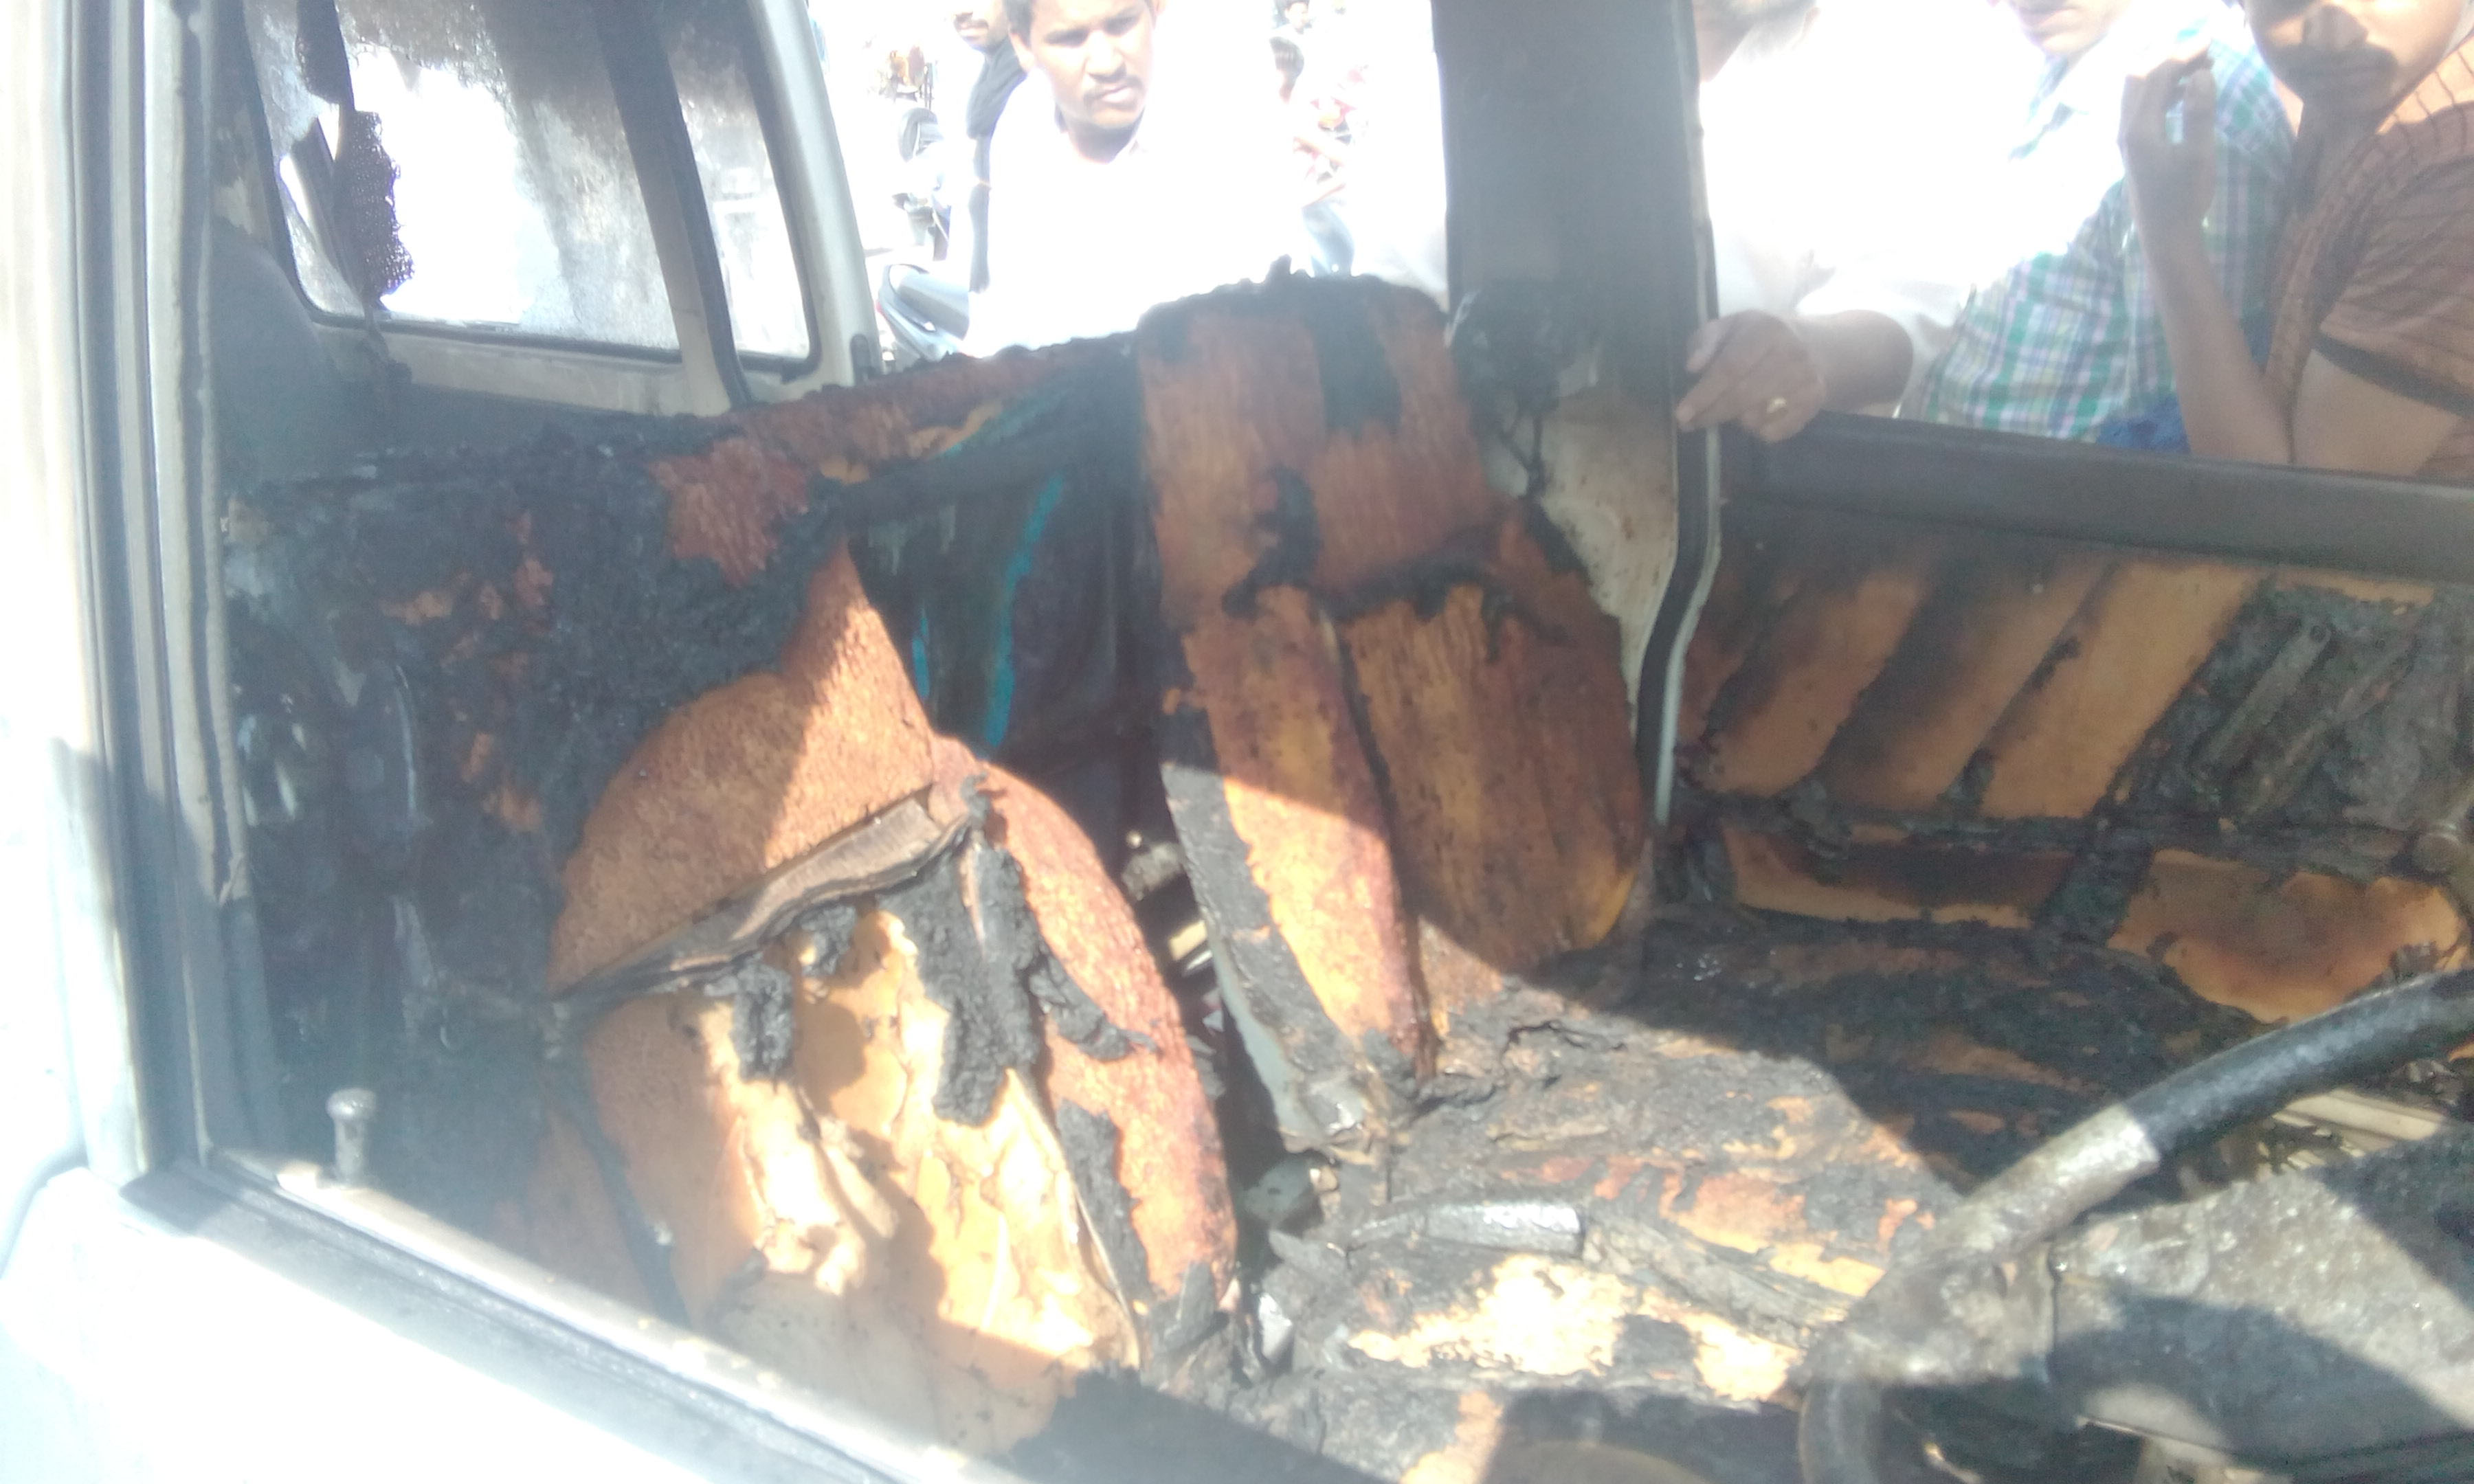 Fire, Maruti Van, Scorched, Injured, Punjab